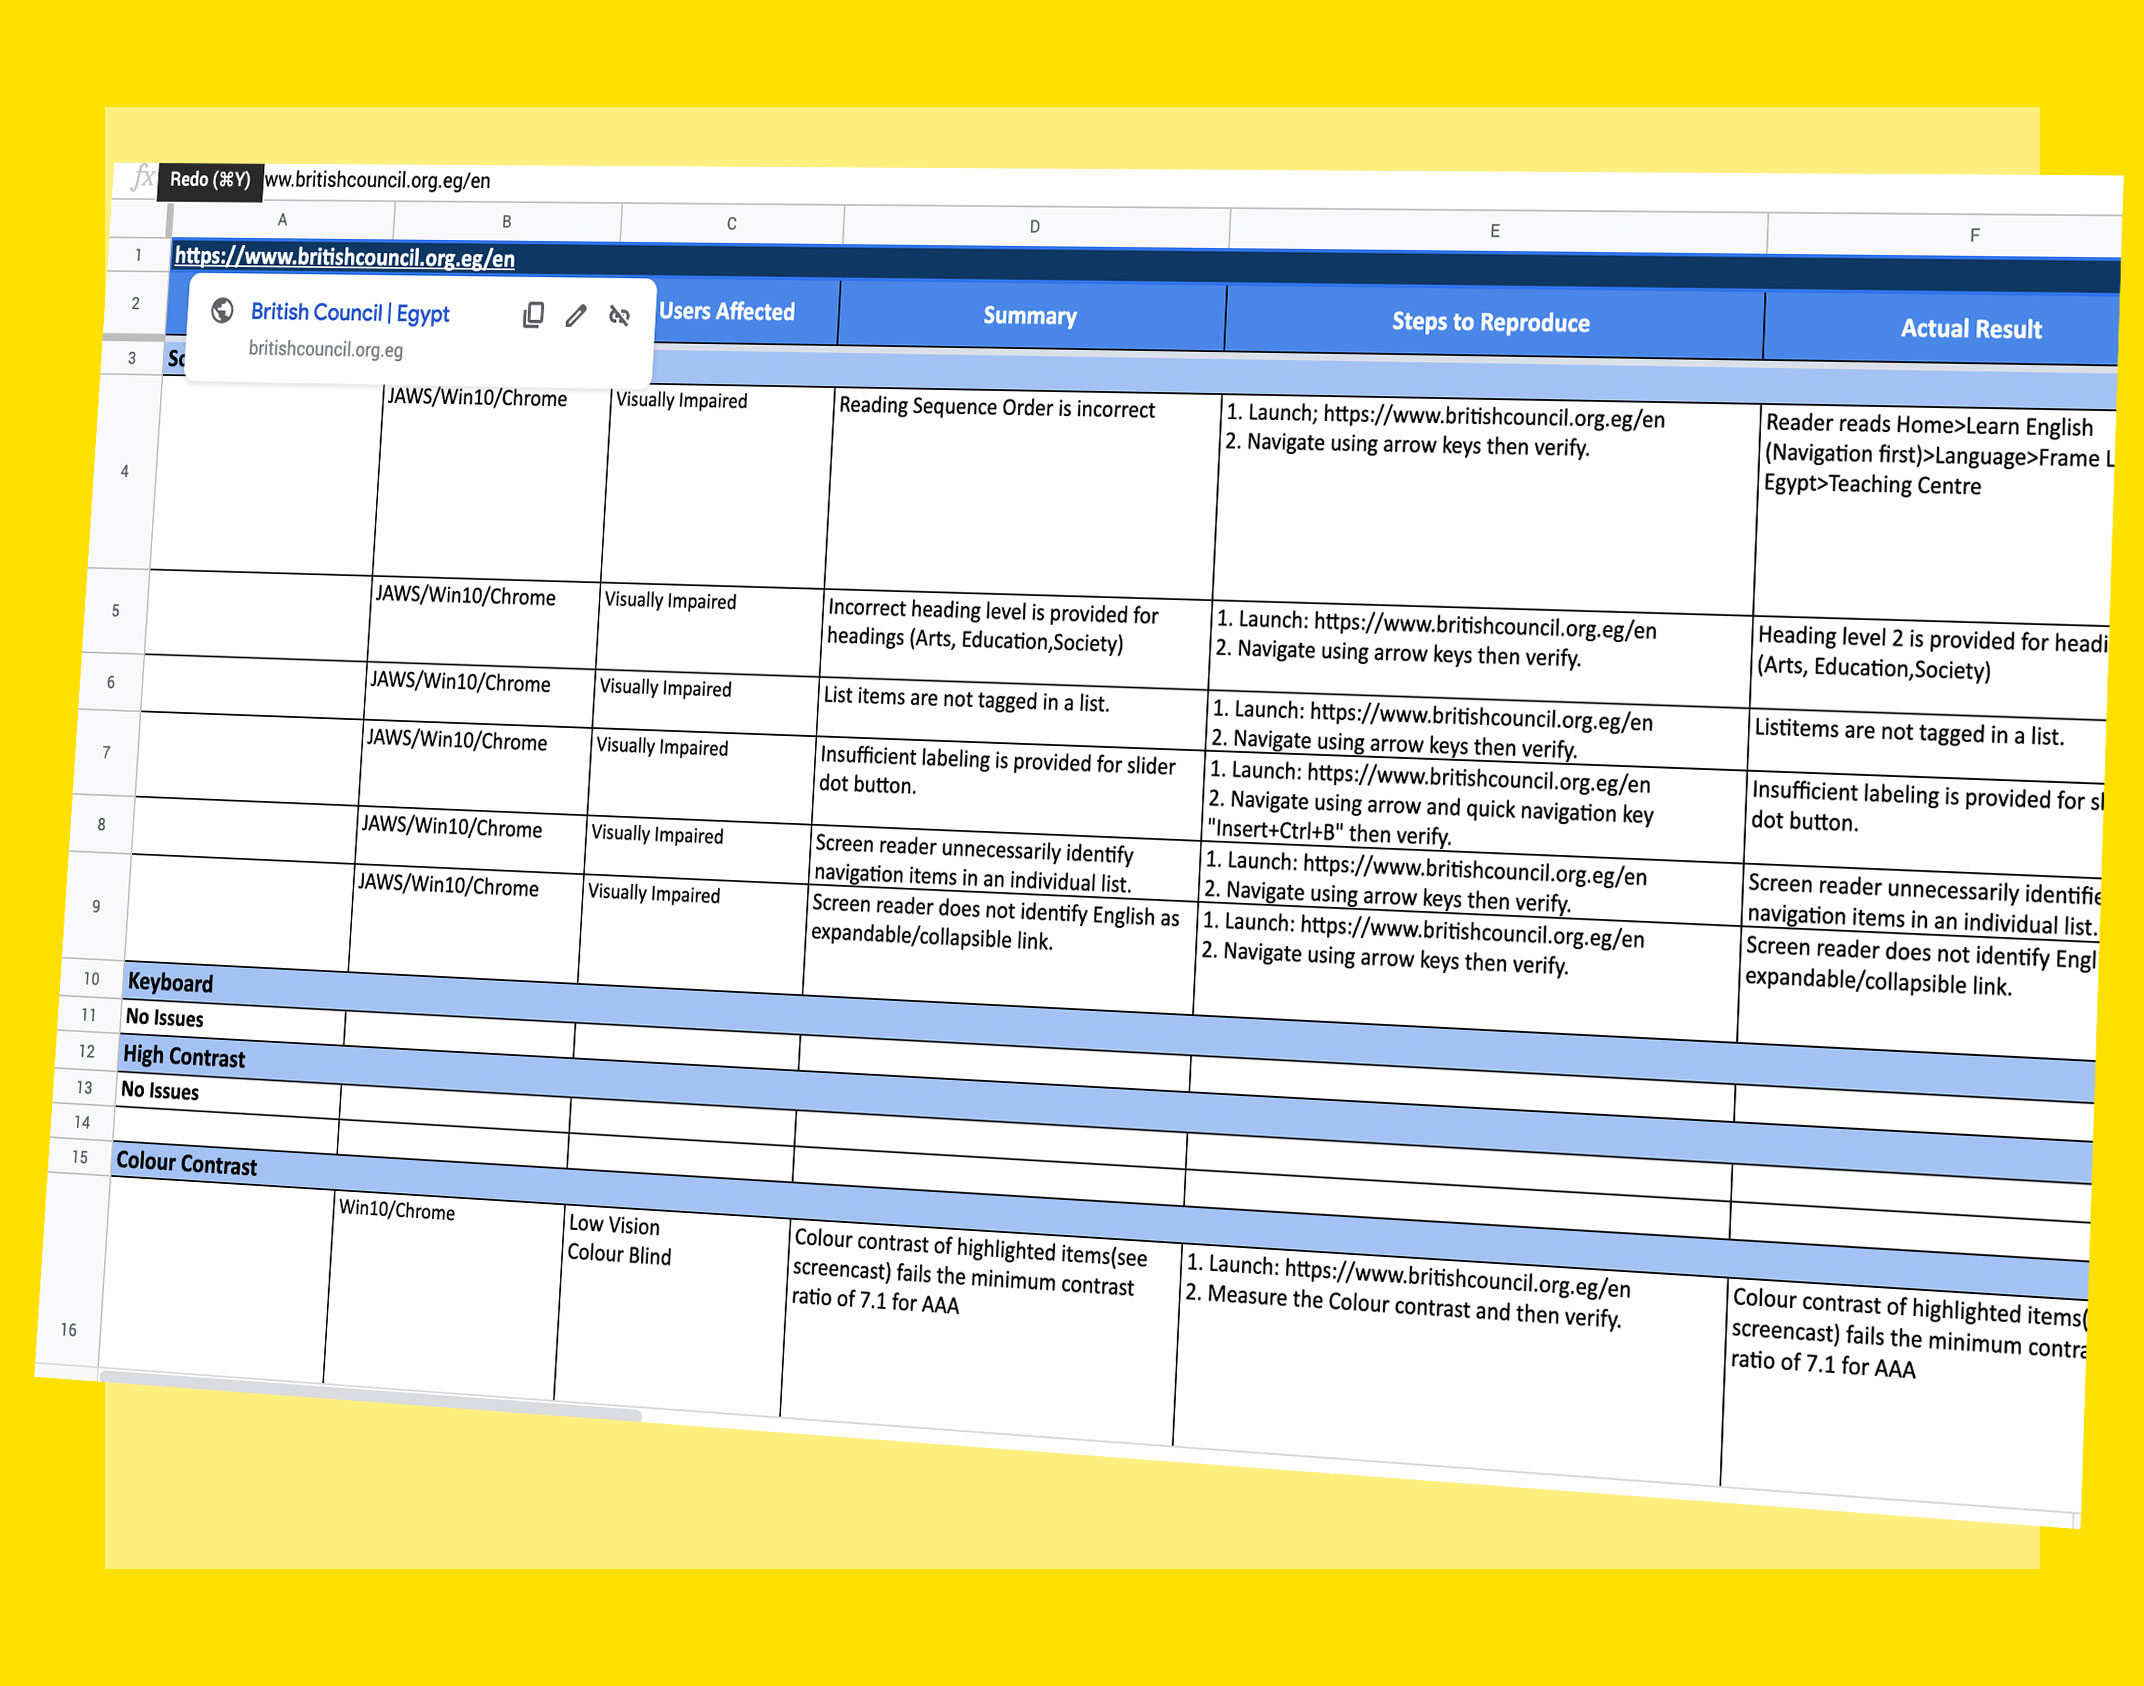 A screenshot of some spreadsheet report findings